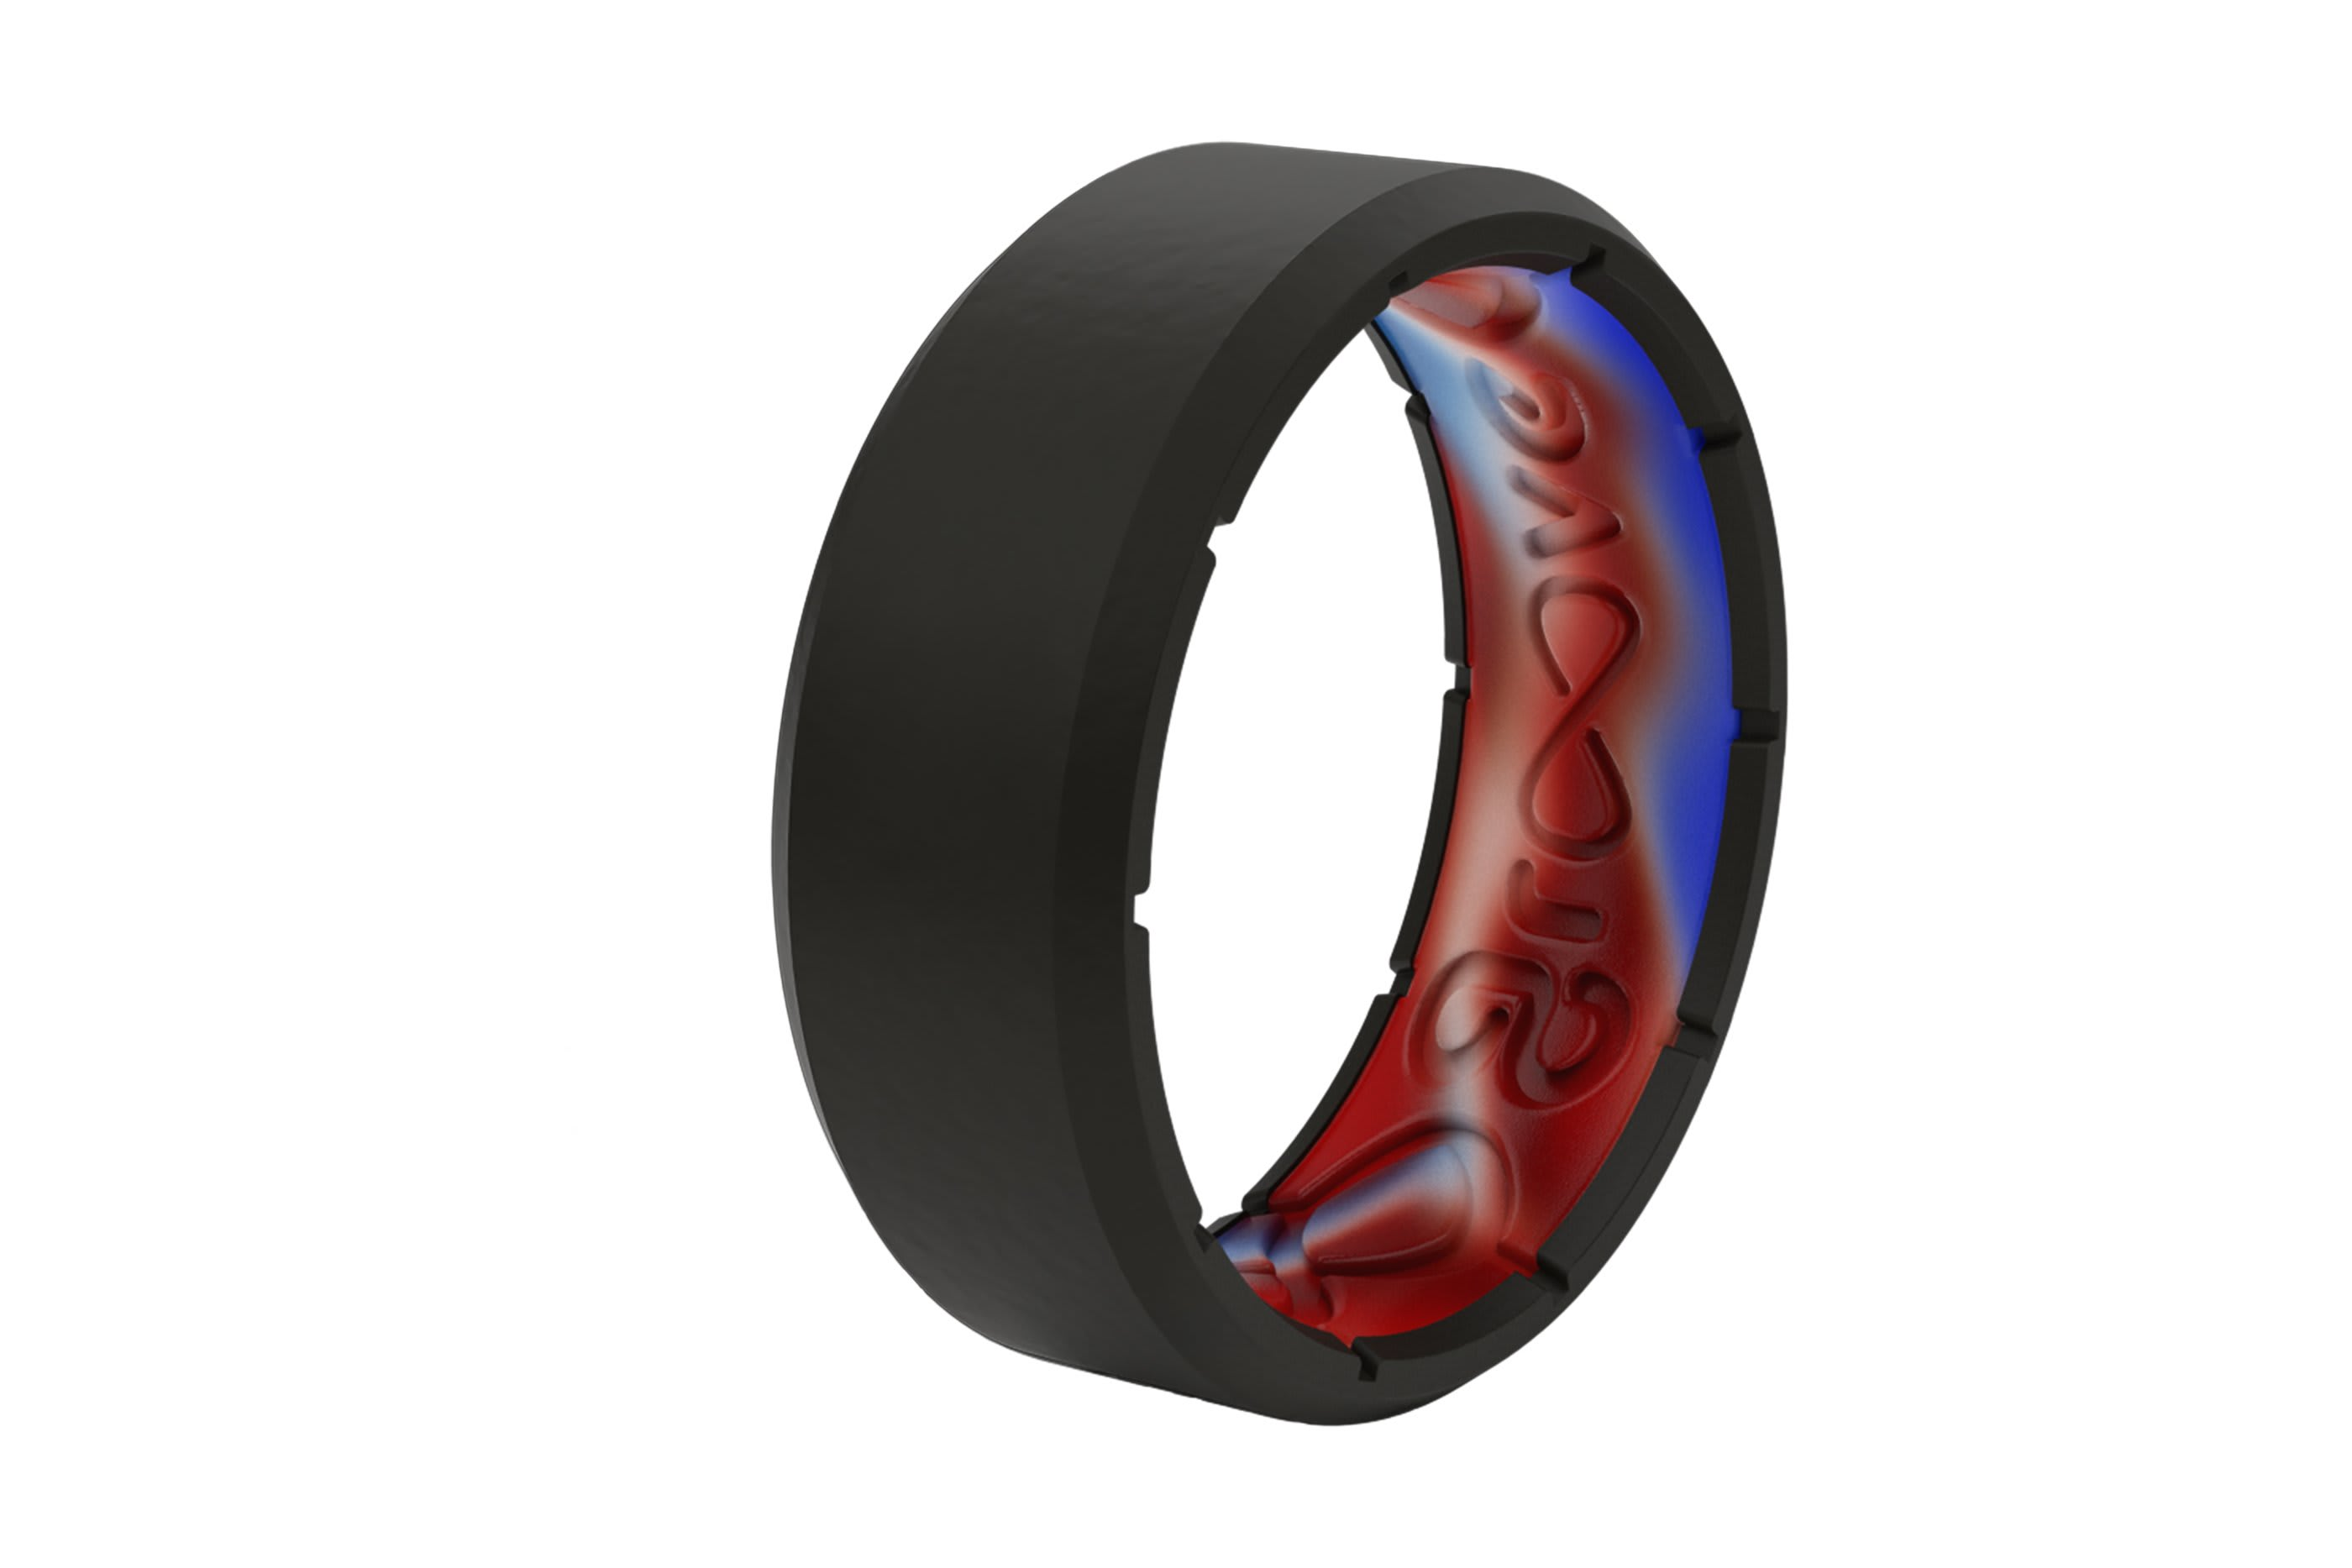 Zeus Patriot Edition Ring viewed on its side